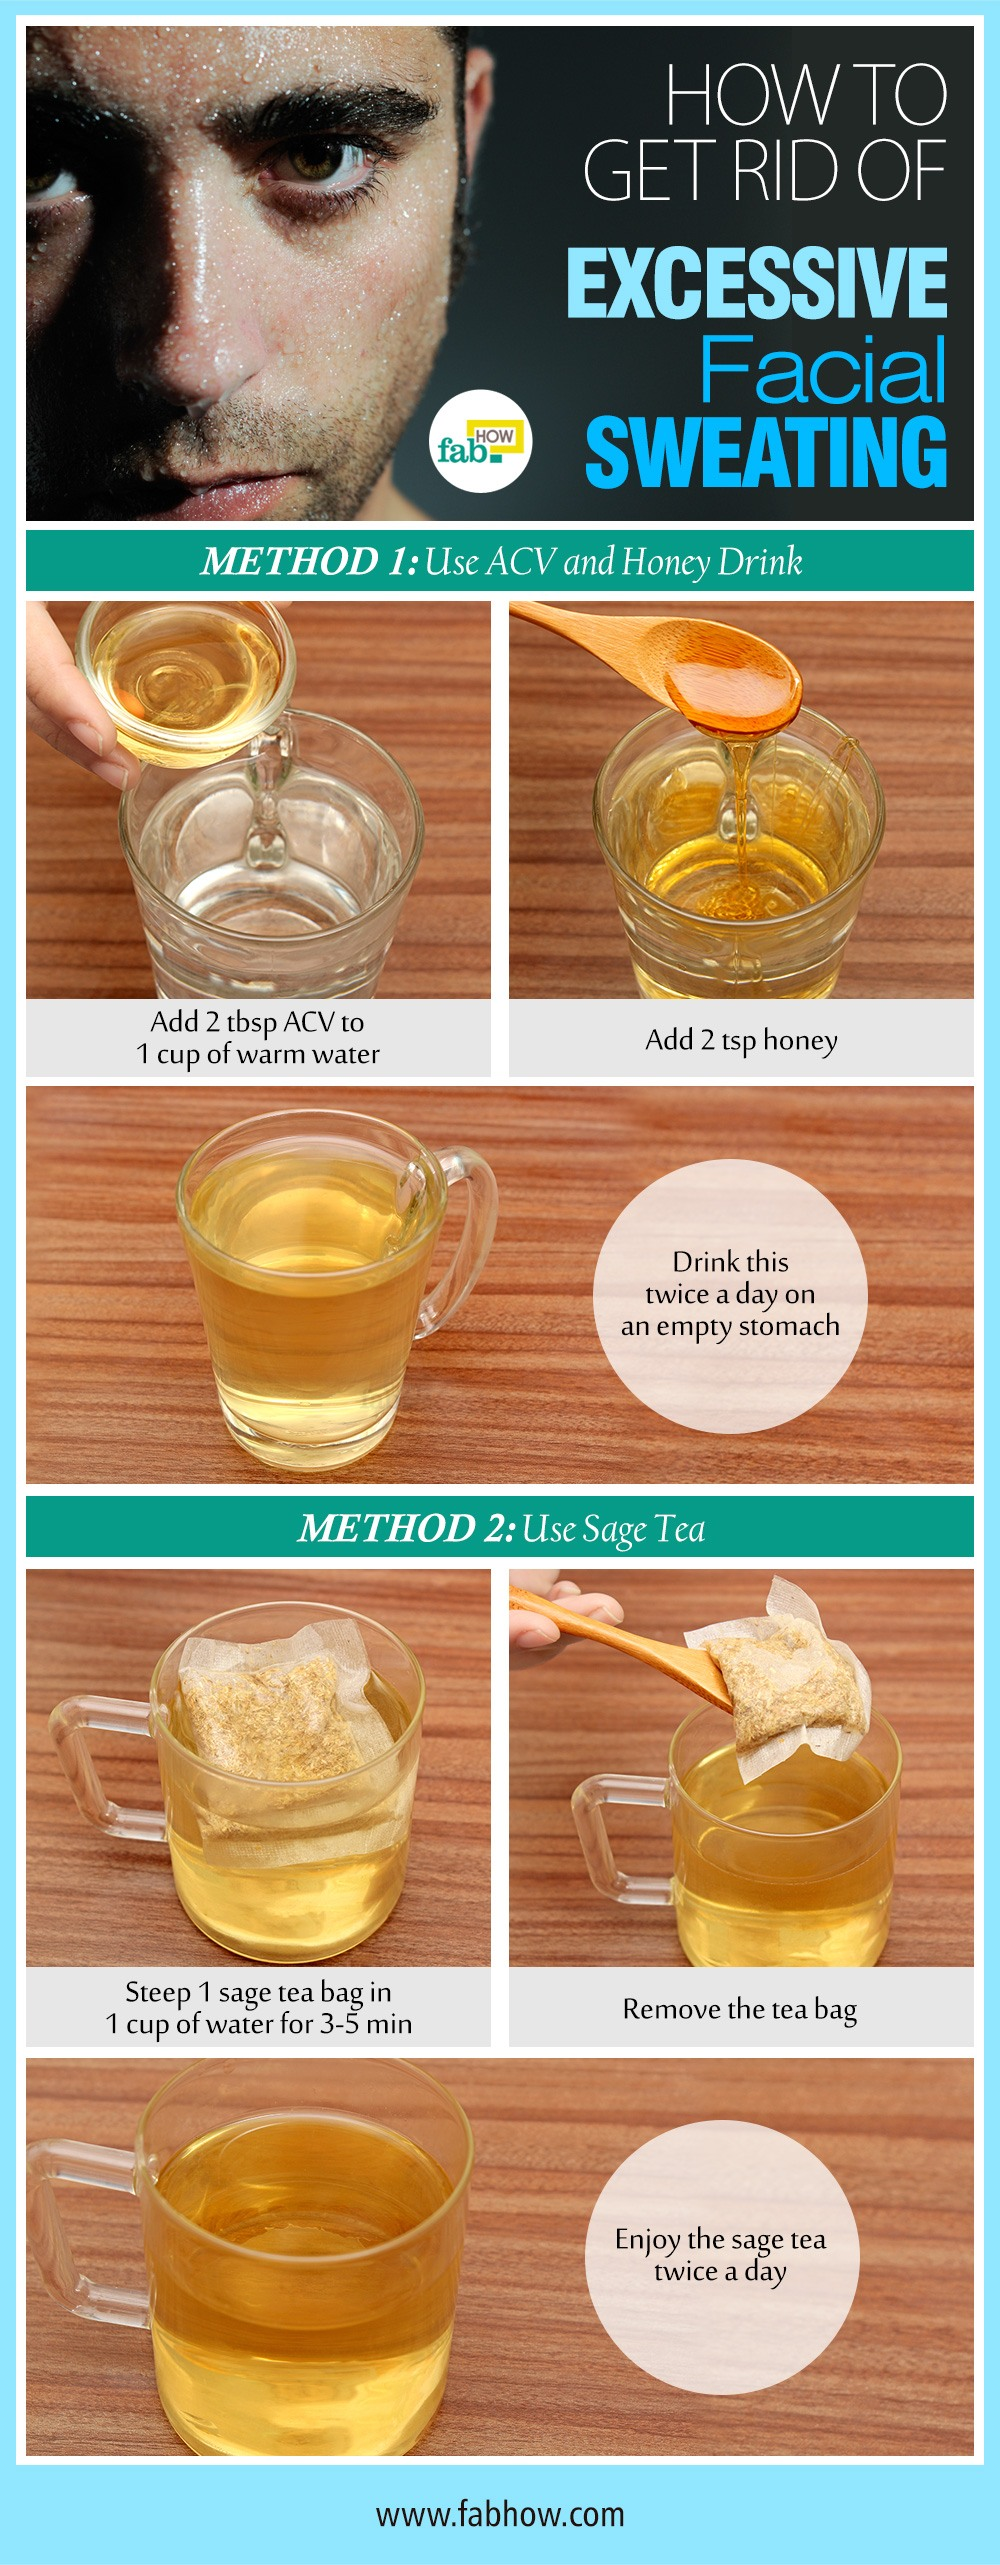 how to stop facial sweating with 2 natural remedies | fab how, Skeleton